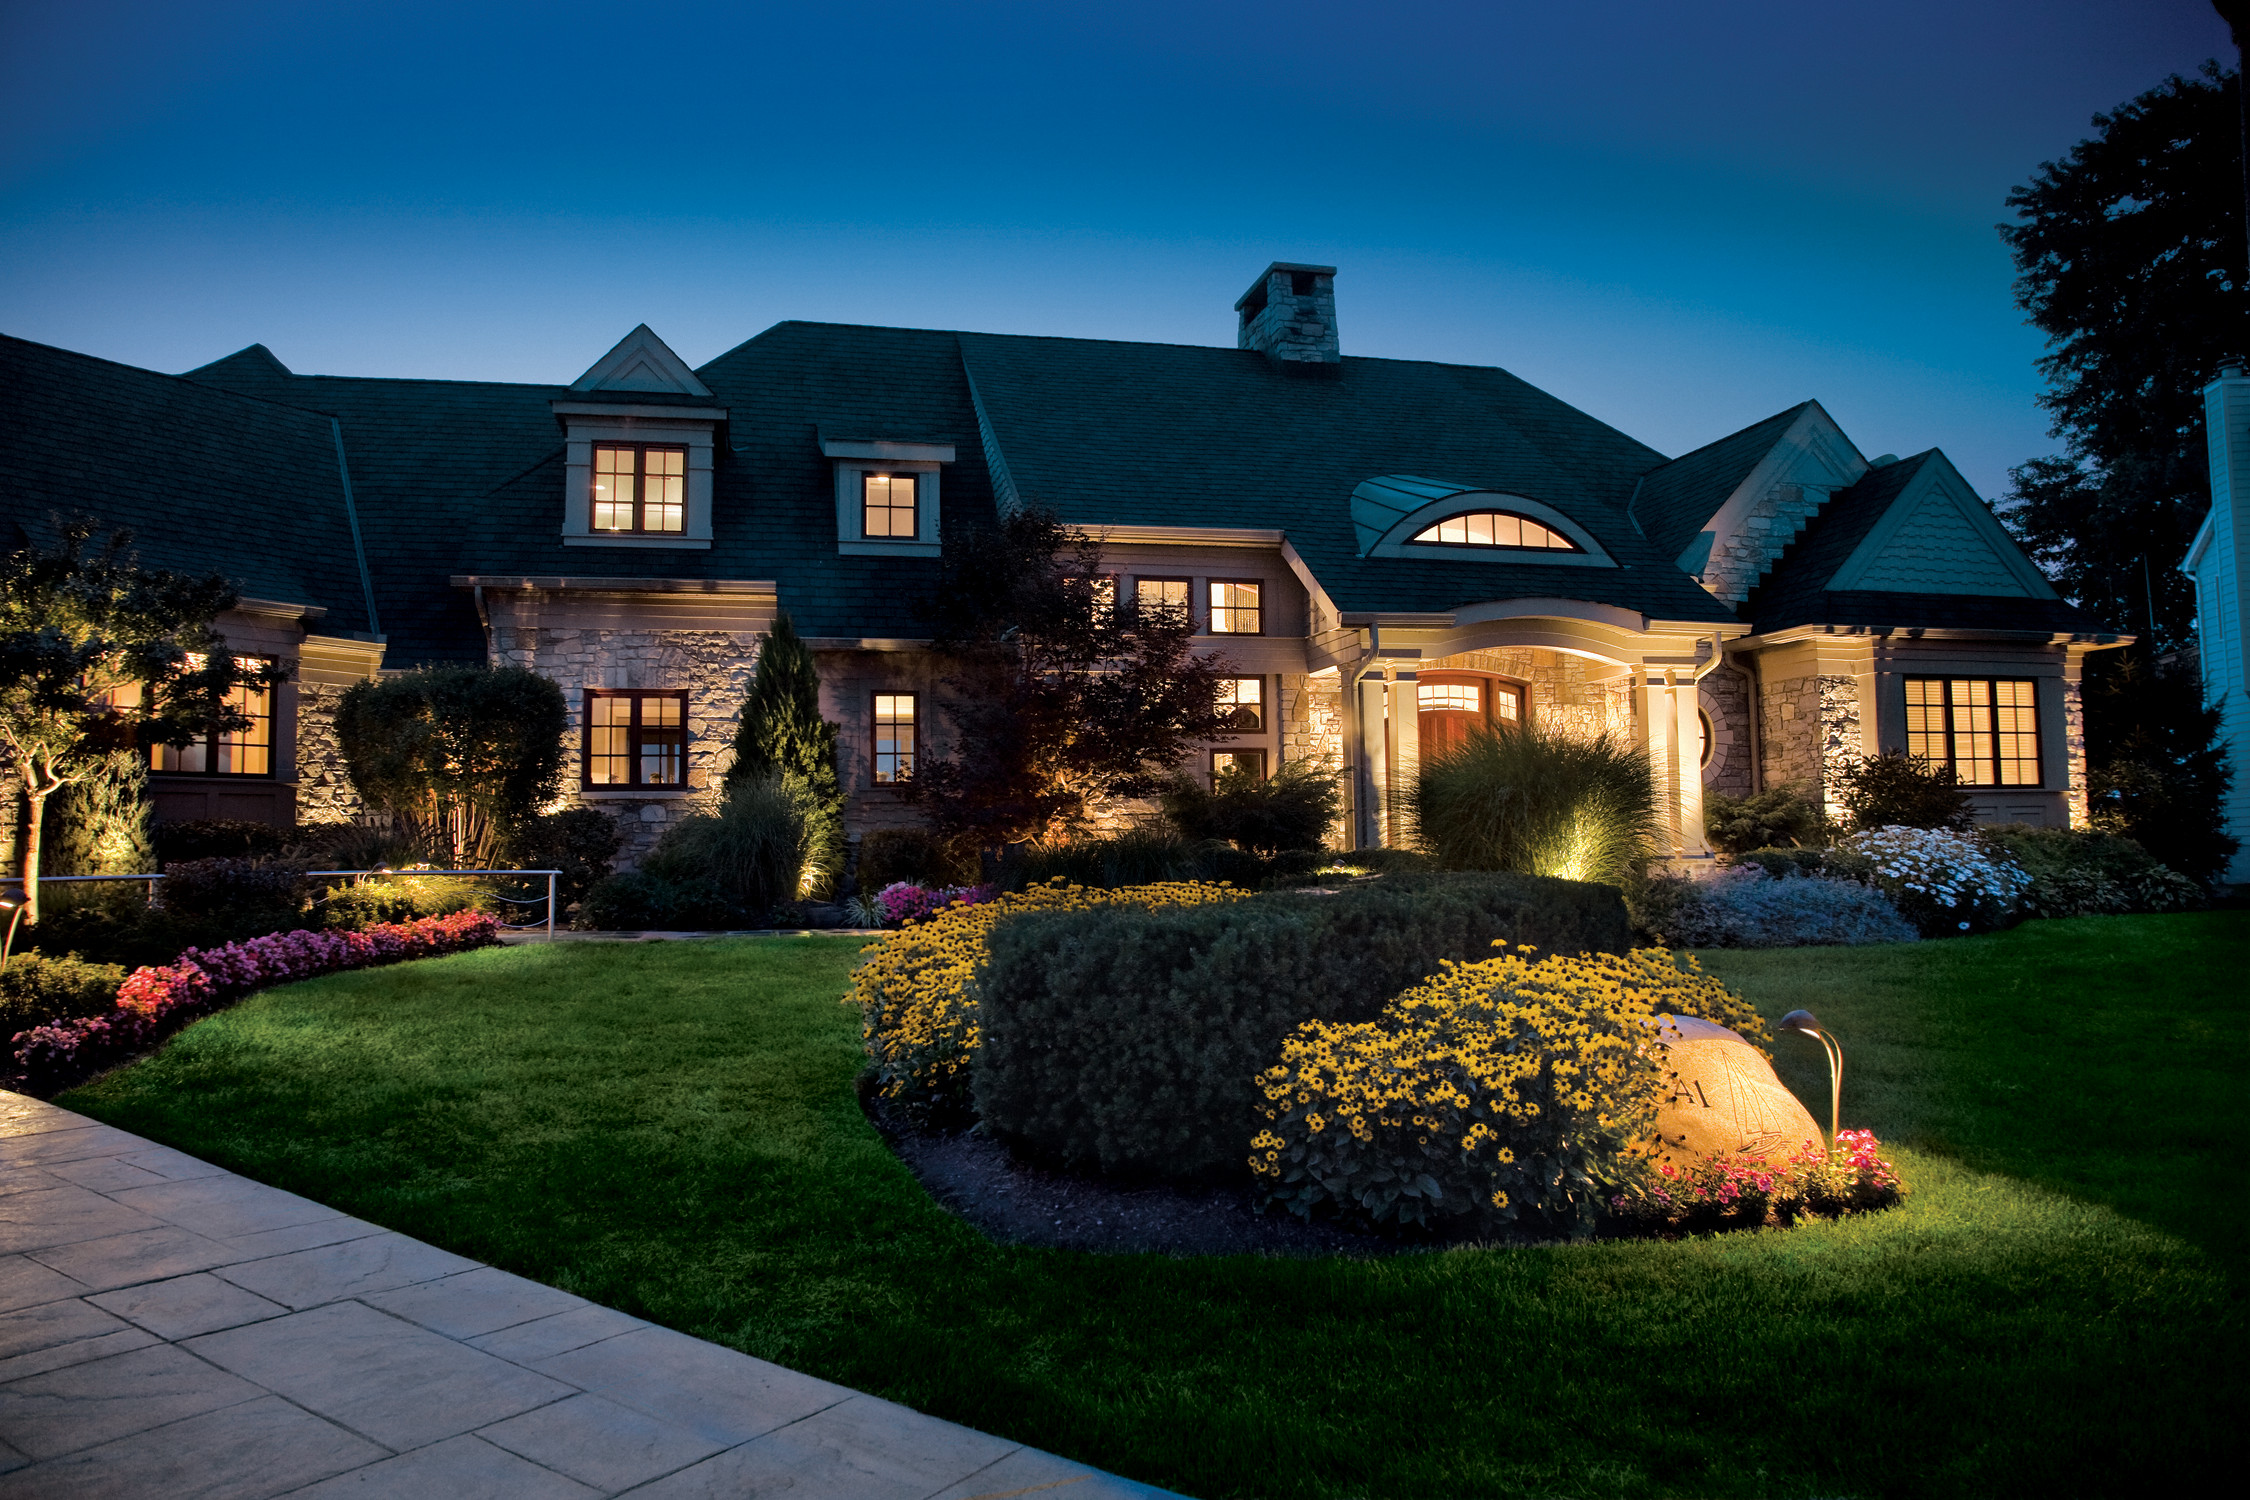 Landscape Lighting Ideas  The Outdoor Lighting Ideas For Update Your House